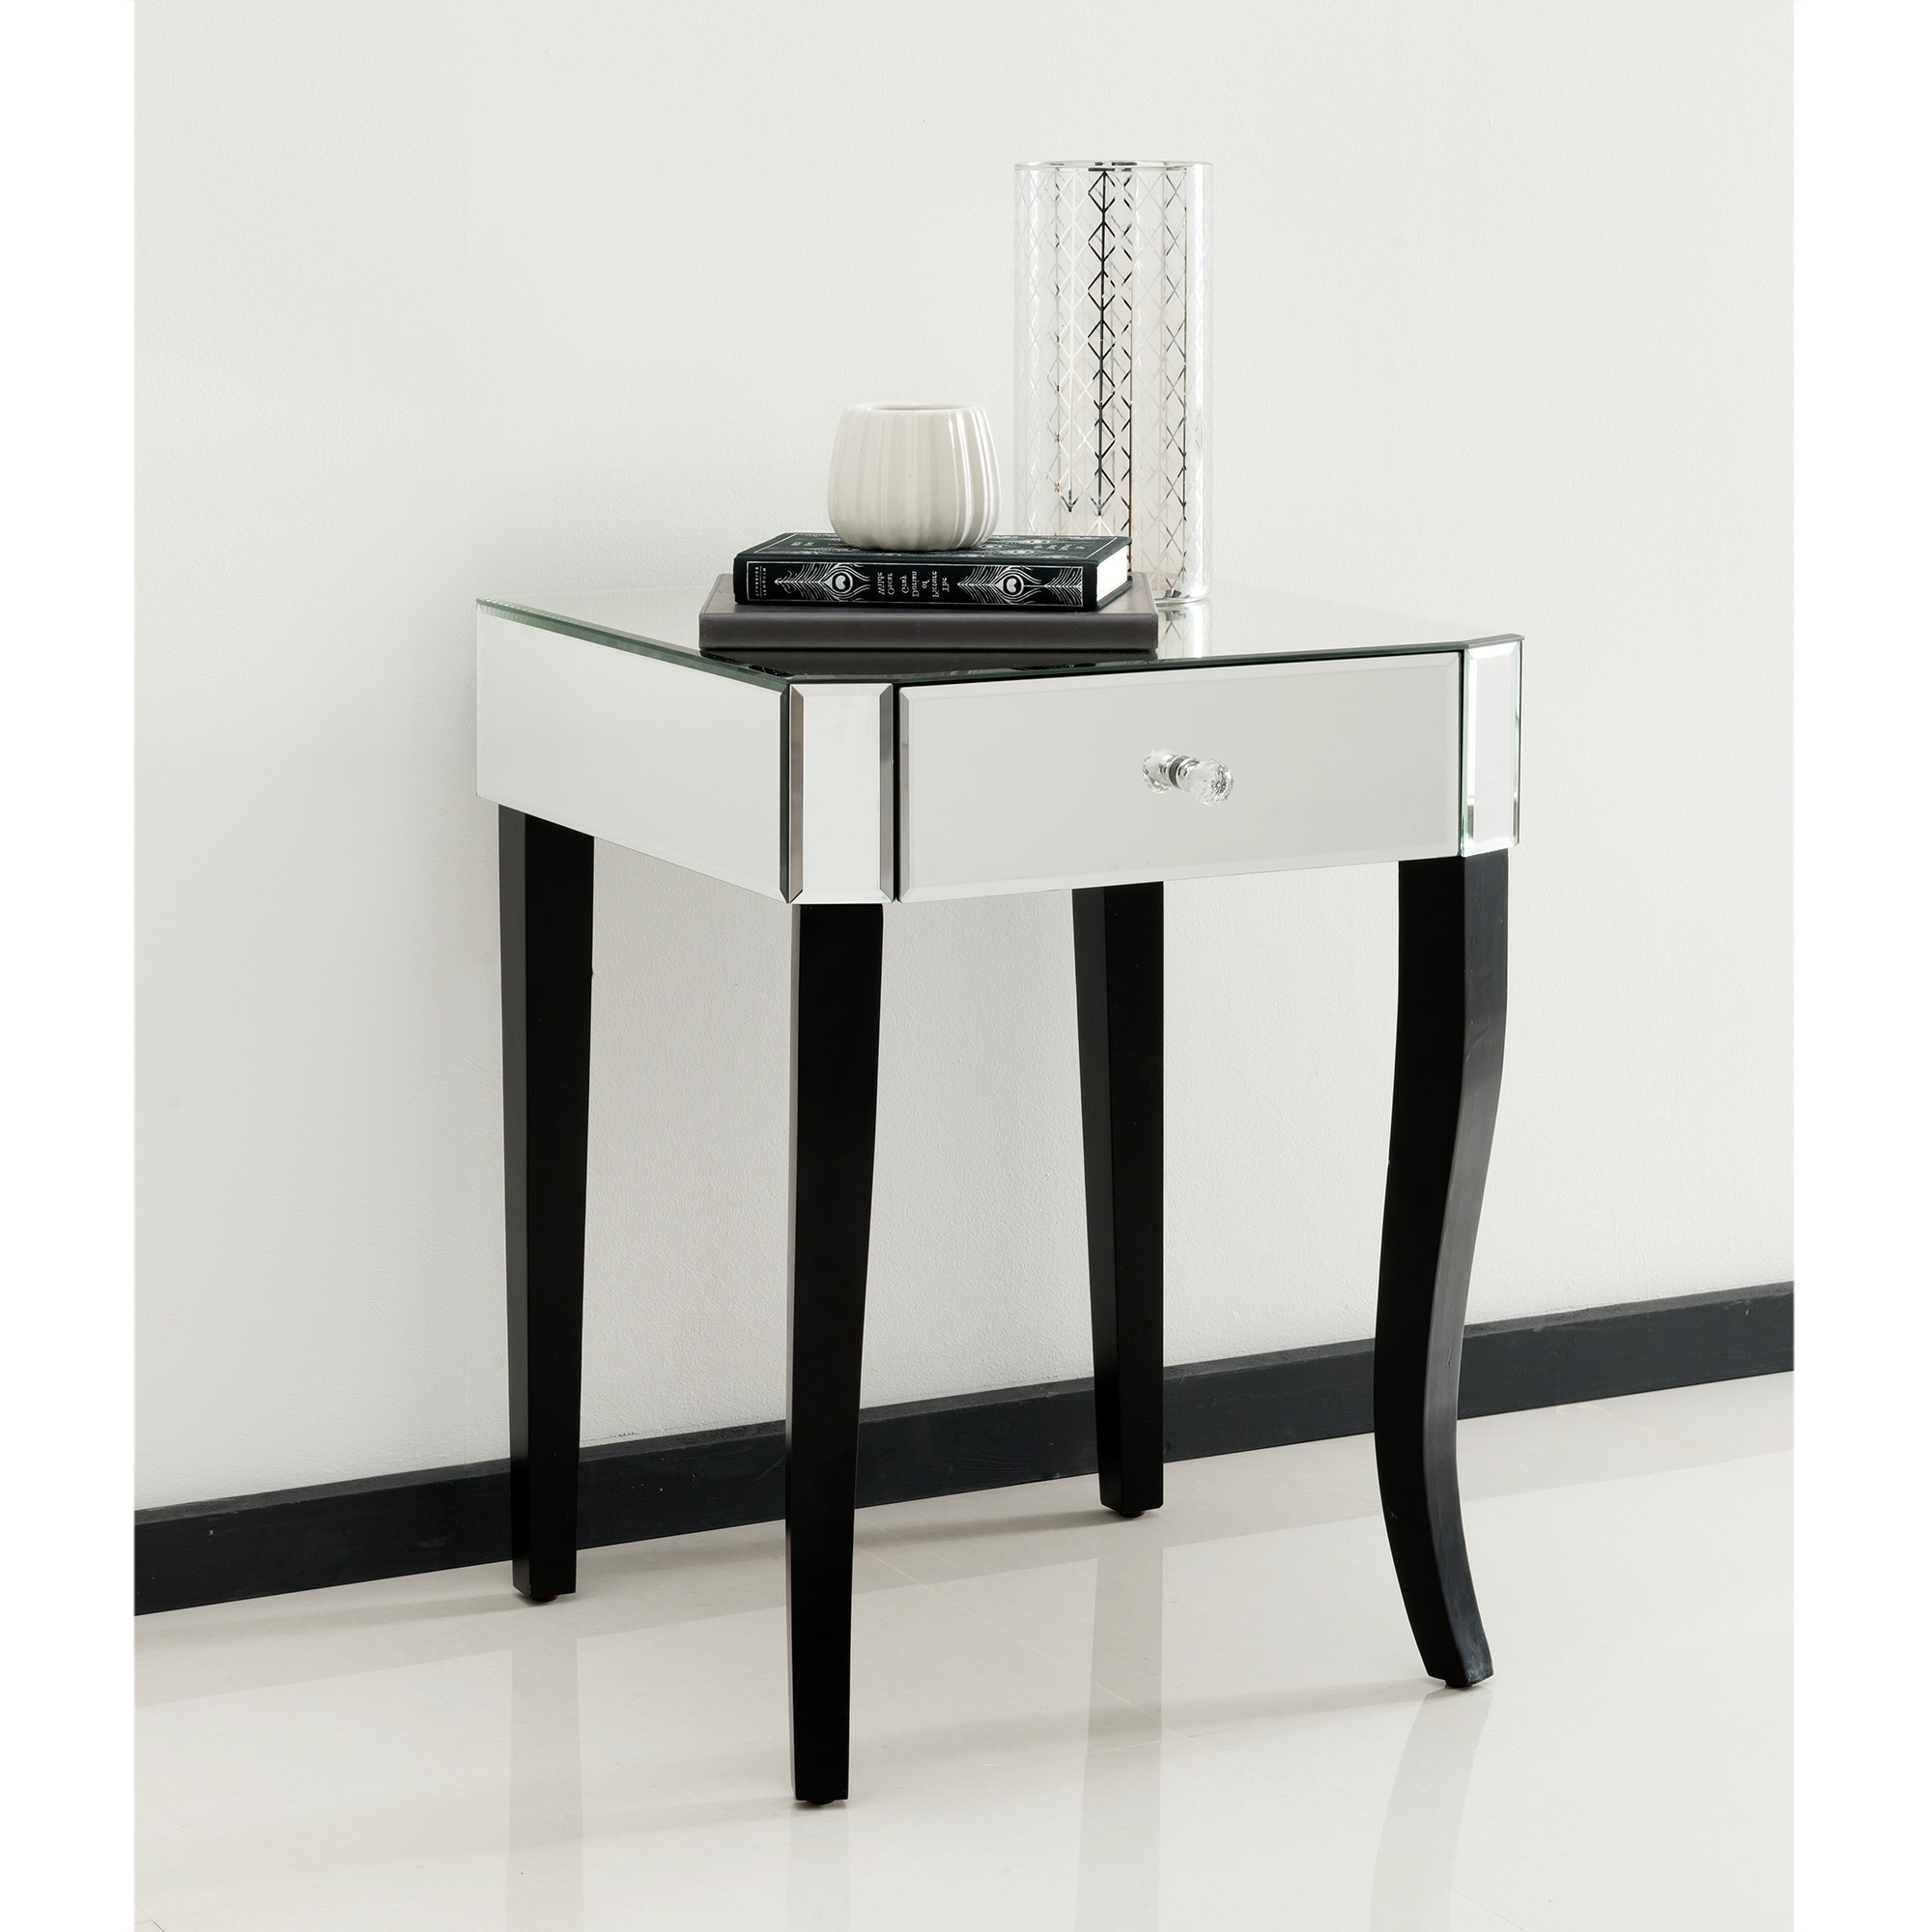 mirrored side table. Romano Crystal Mirrored Side Table I